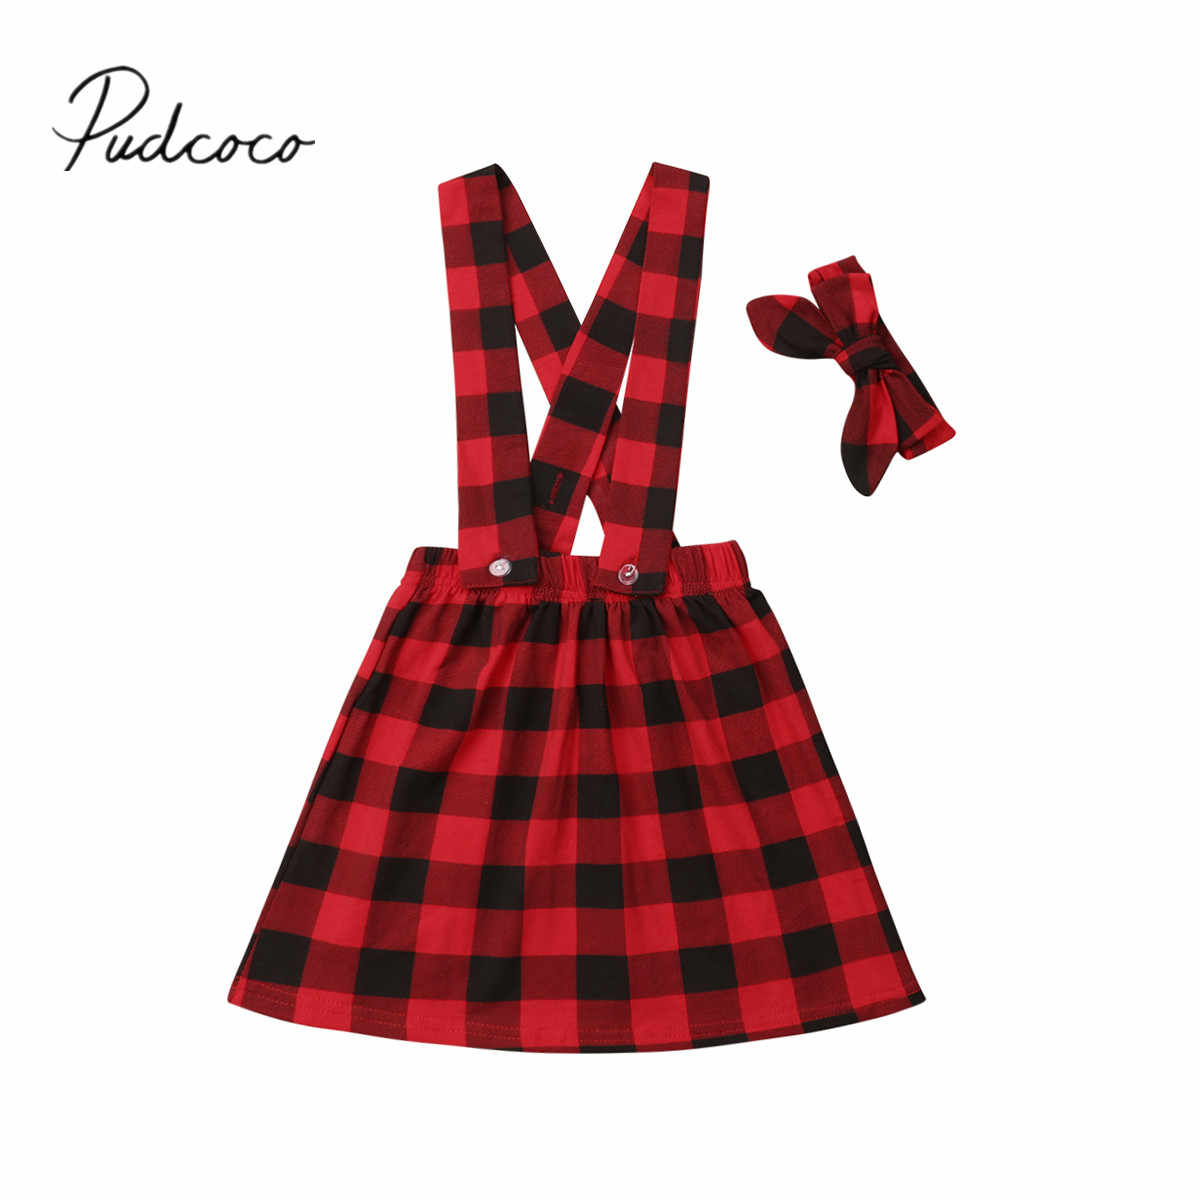 2018 Brand New 1-6Y Toddler Kids Baby Girls Bib Strap Dress+Headband 2PCS Plaid Print Cotton Santa Dress Xmas Outfit 1-6Y